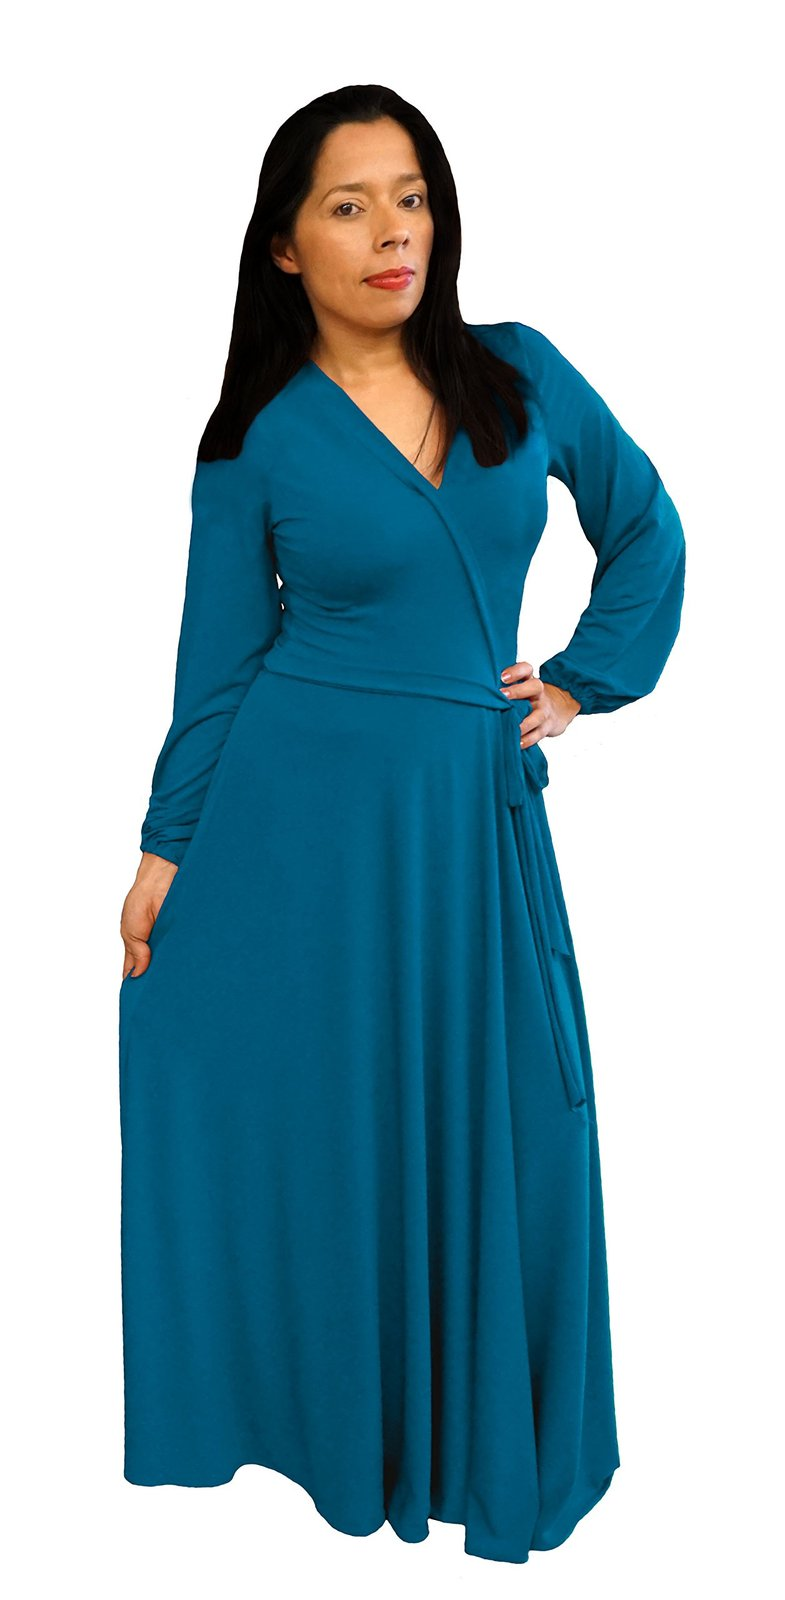 DBG Women's Teal Polyester Long Sleeves Maxi Dress-Medium